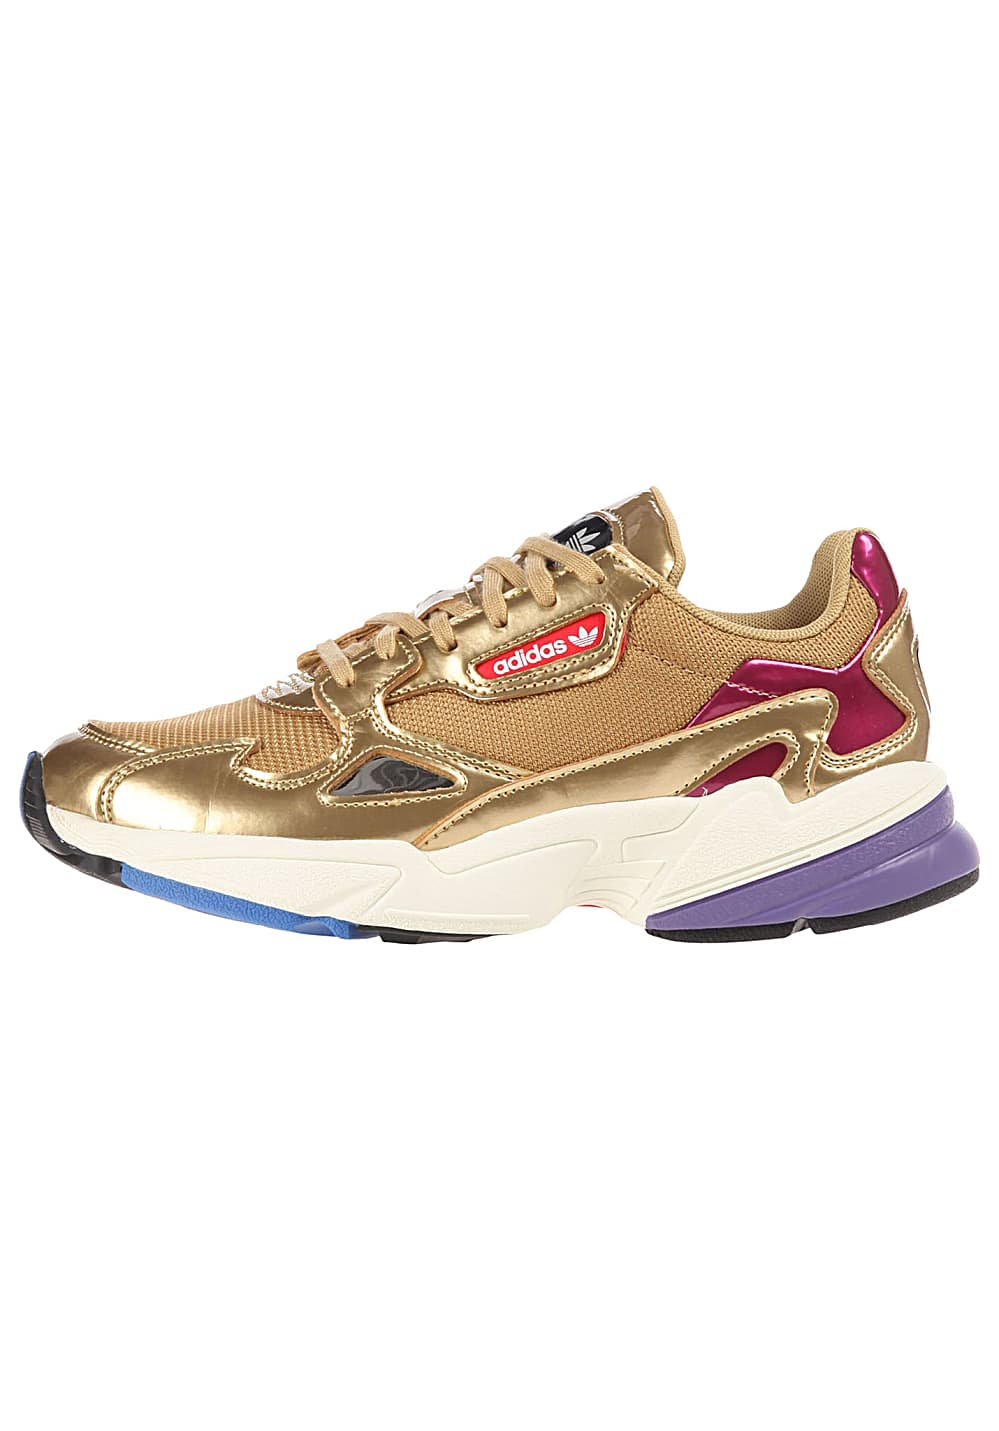 adidas Originals Falcon - Sneaker für Damen - Gold